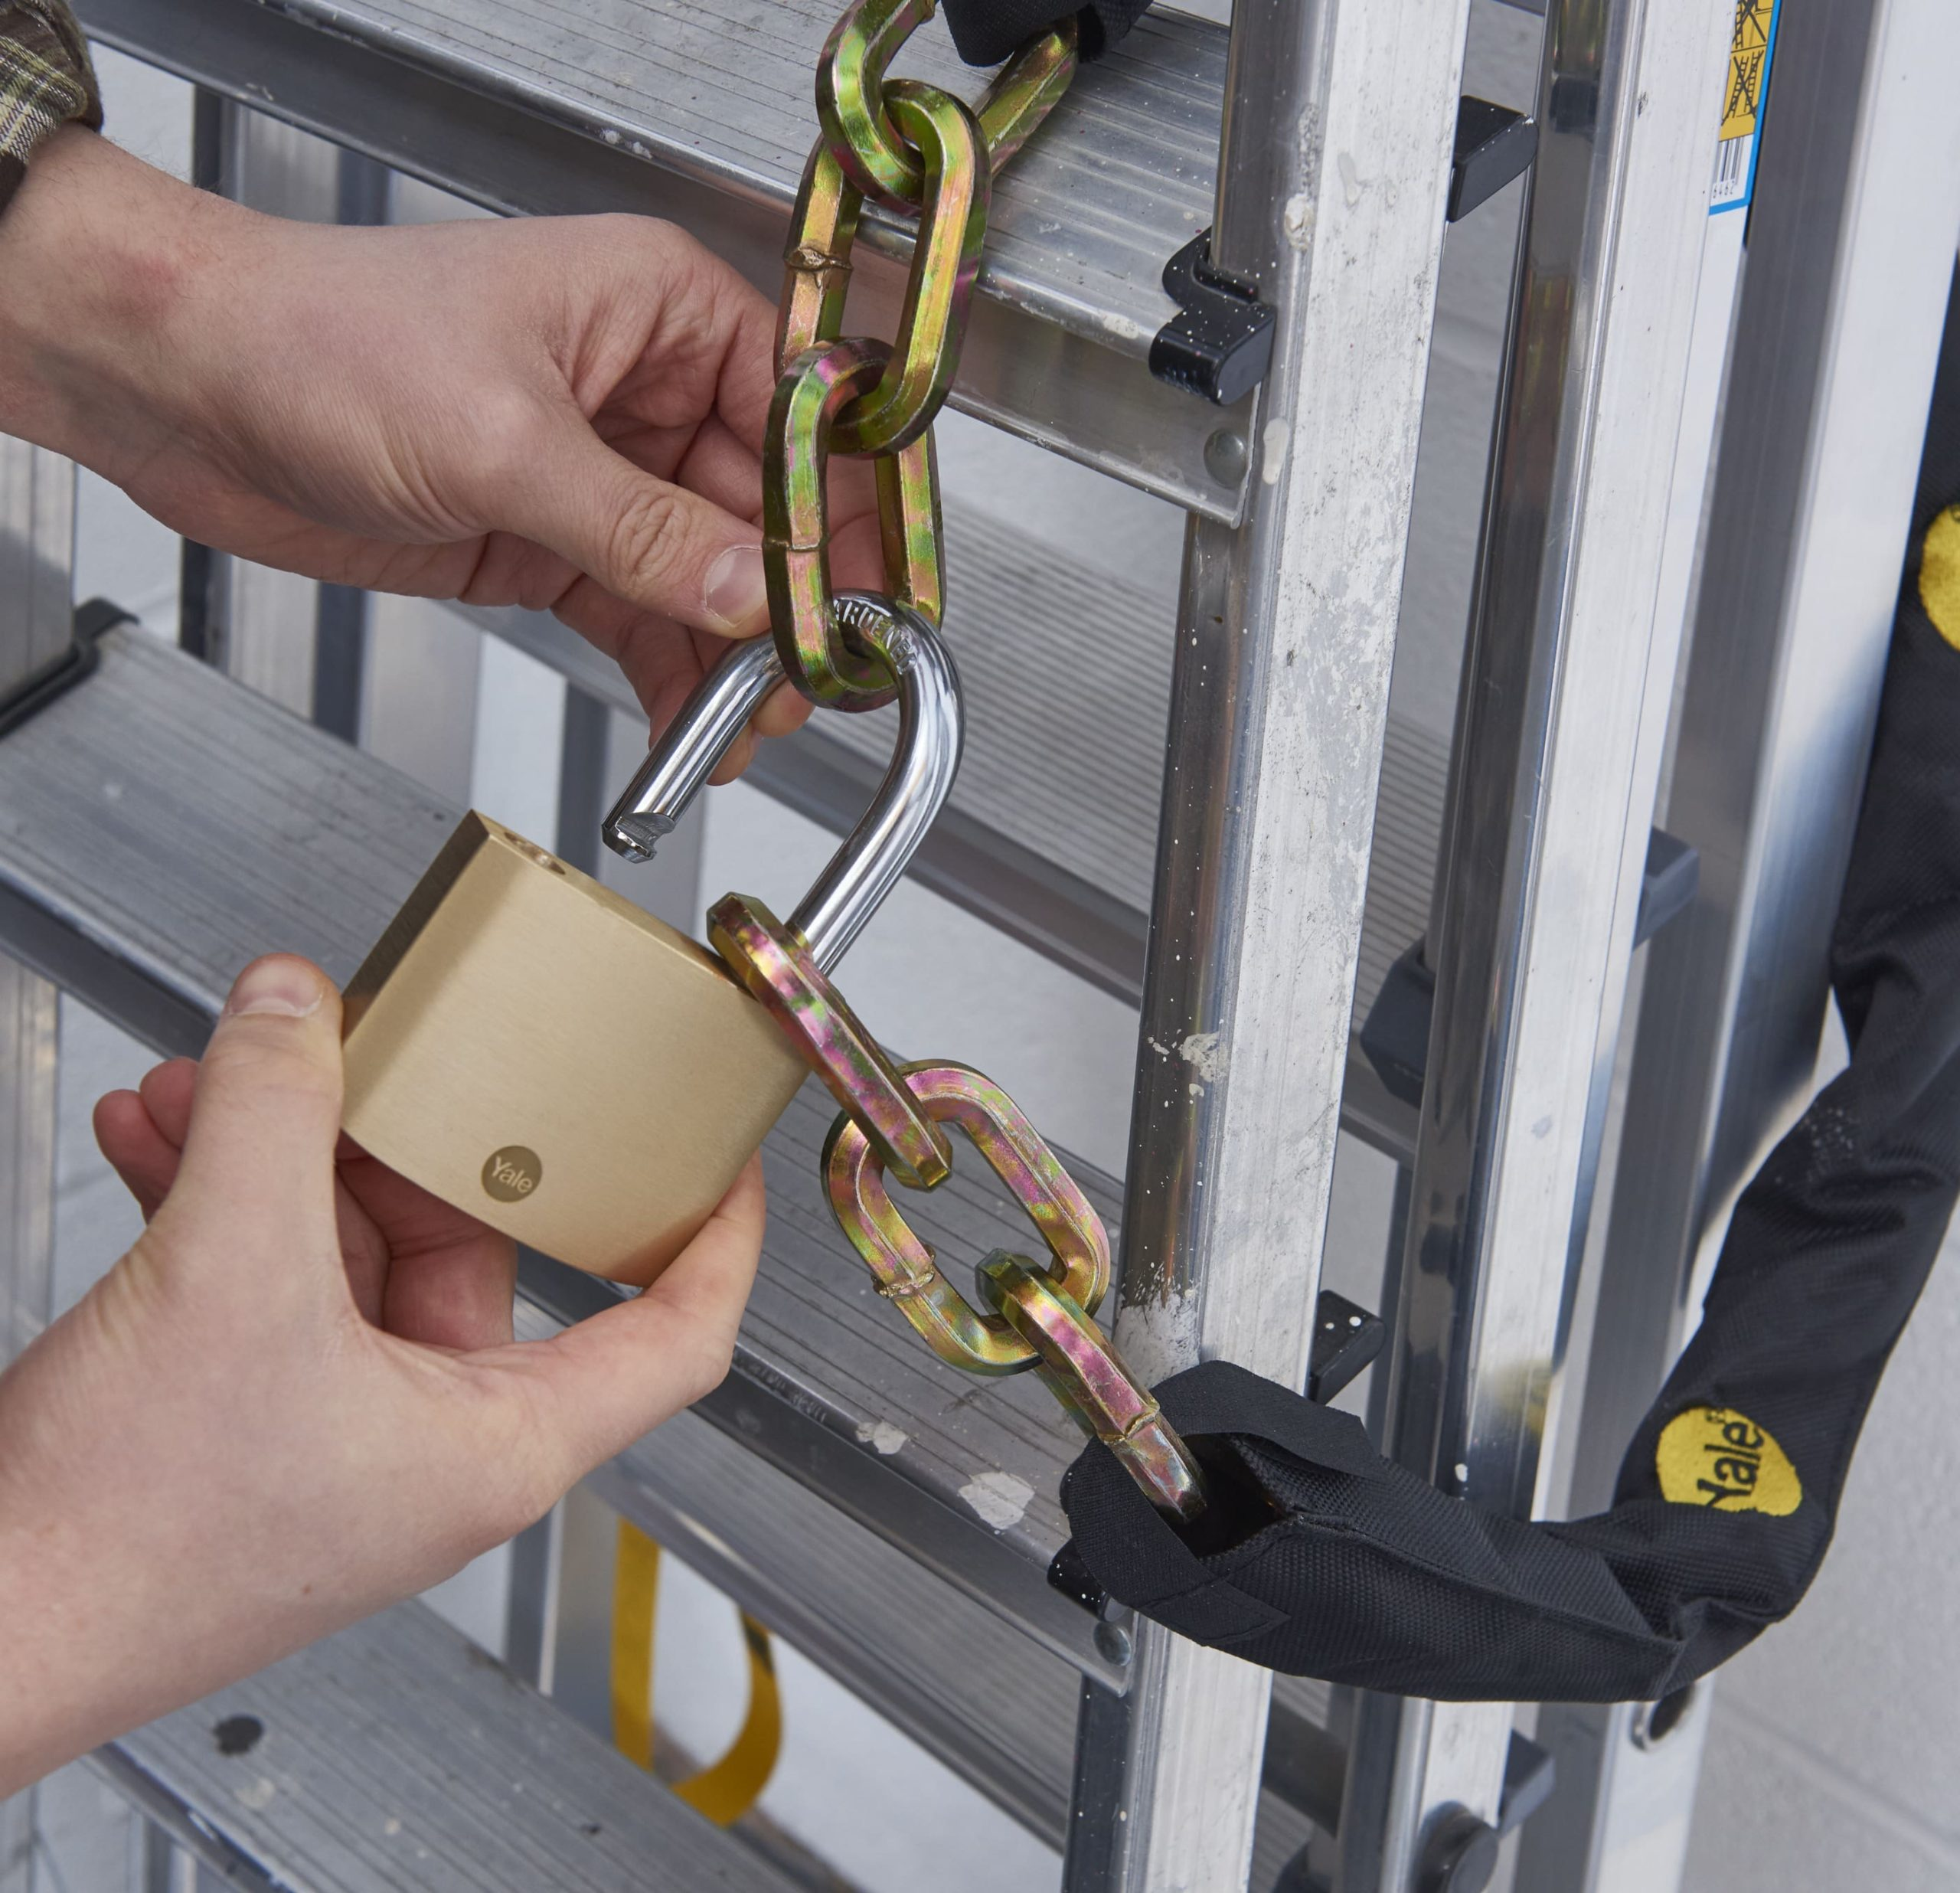 Yale's top tips on protecting your tools from theft